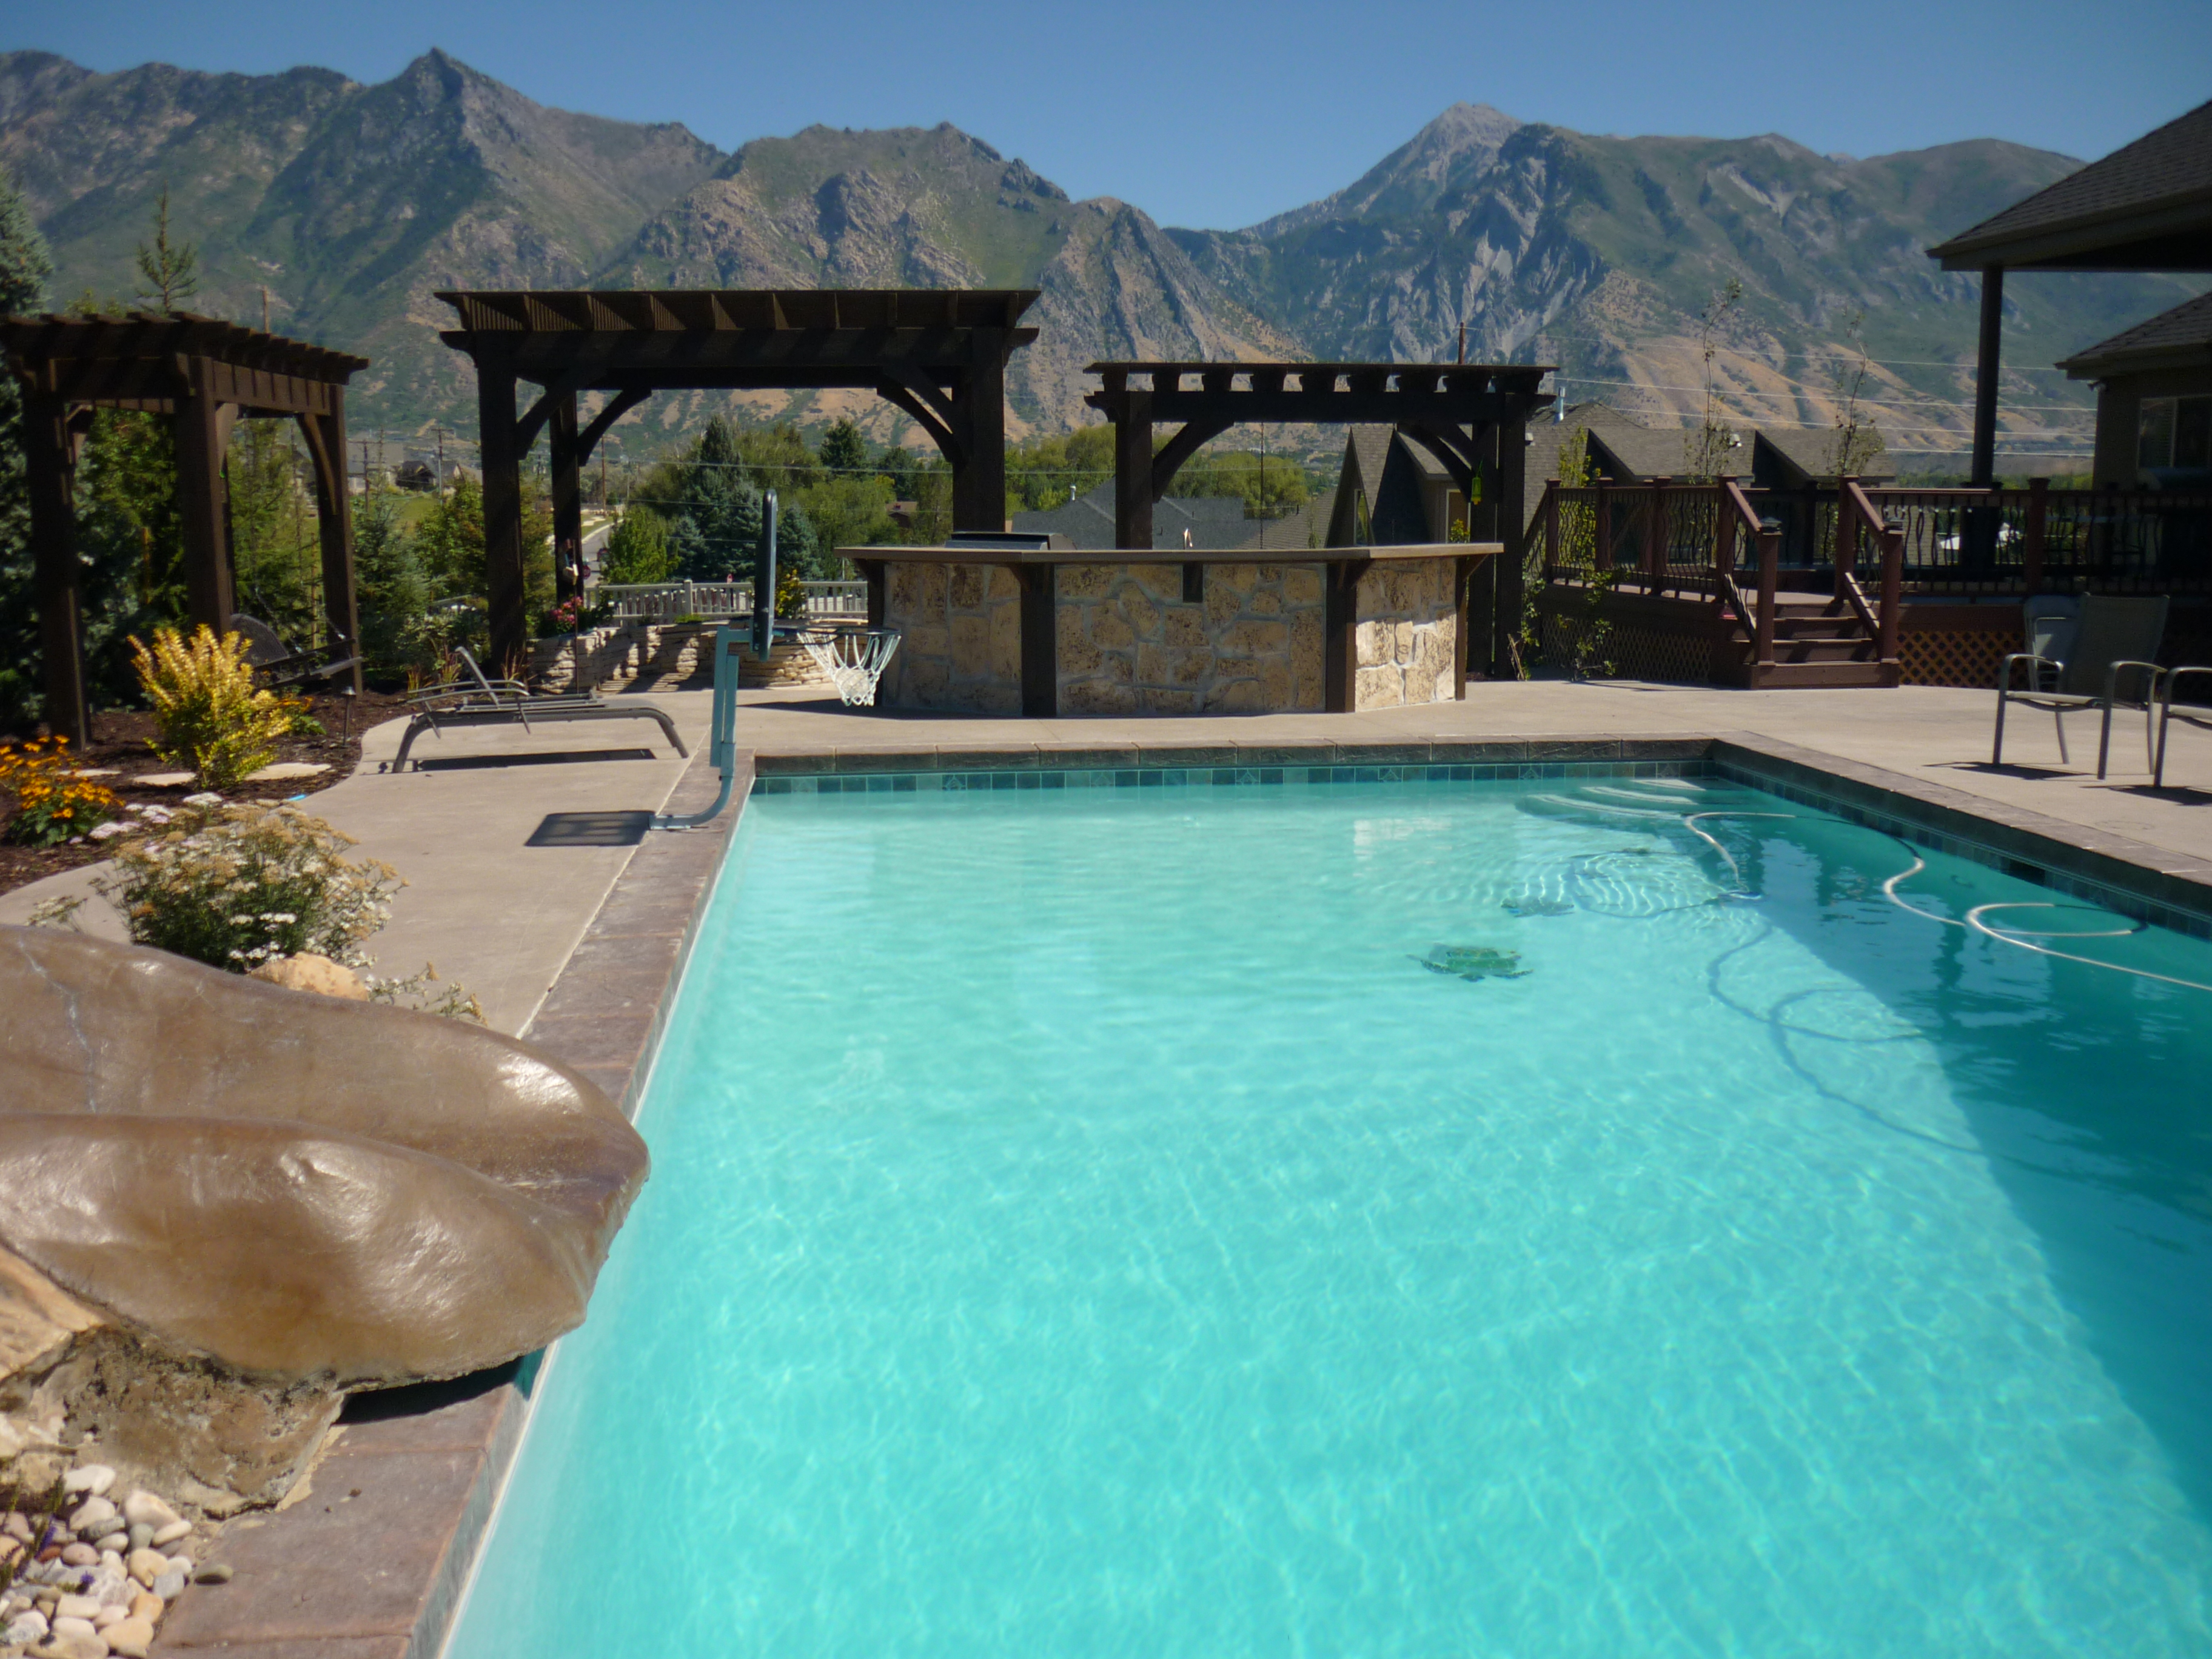 Utah Backyard Playgrounds Trampolines In The Ground Rock Water Feature Play Rocks Basketball